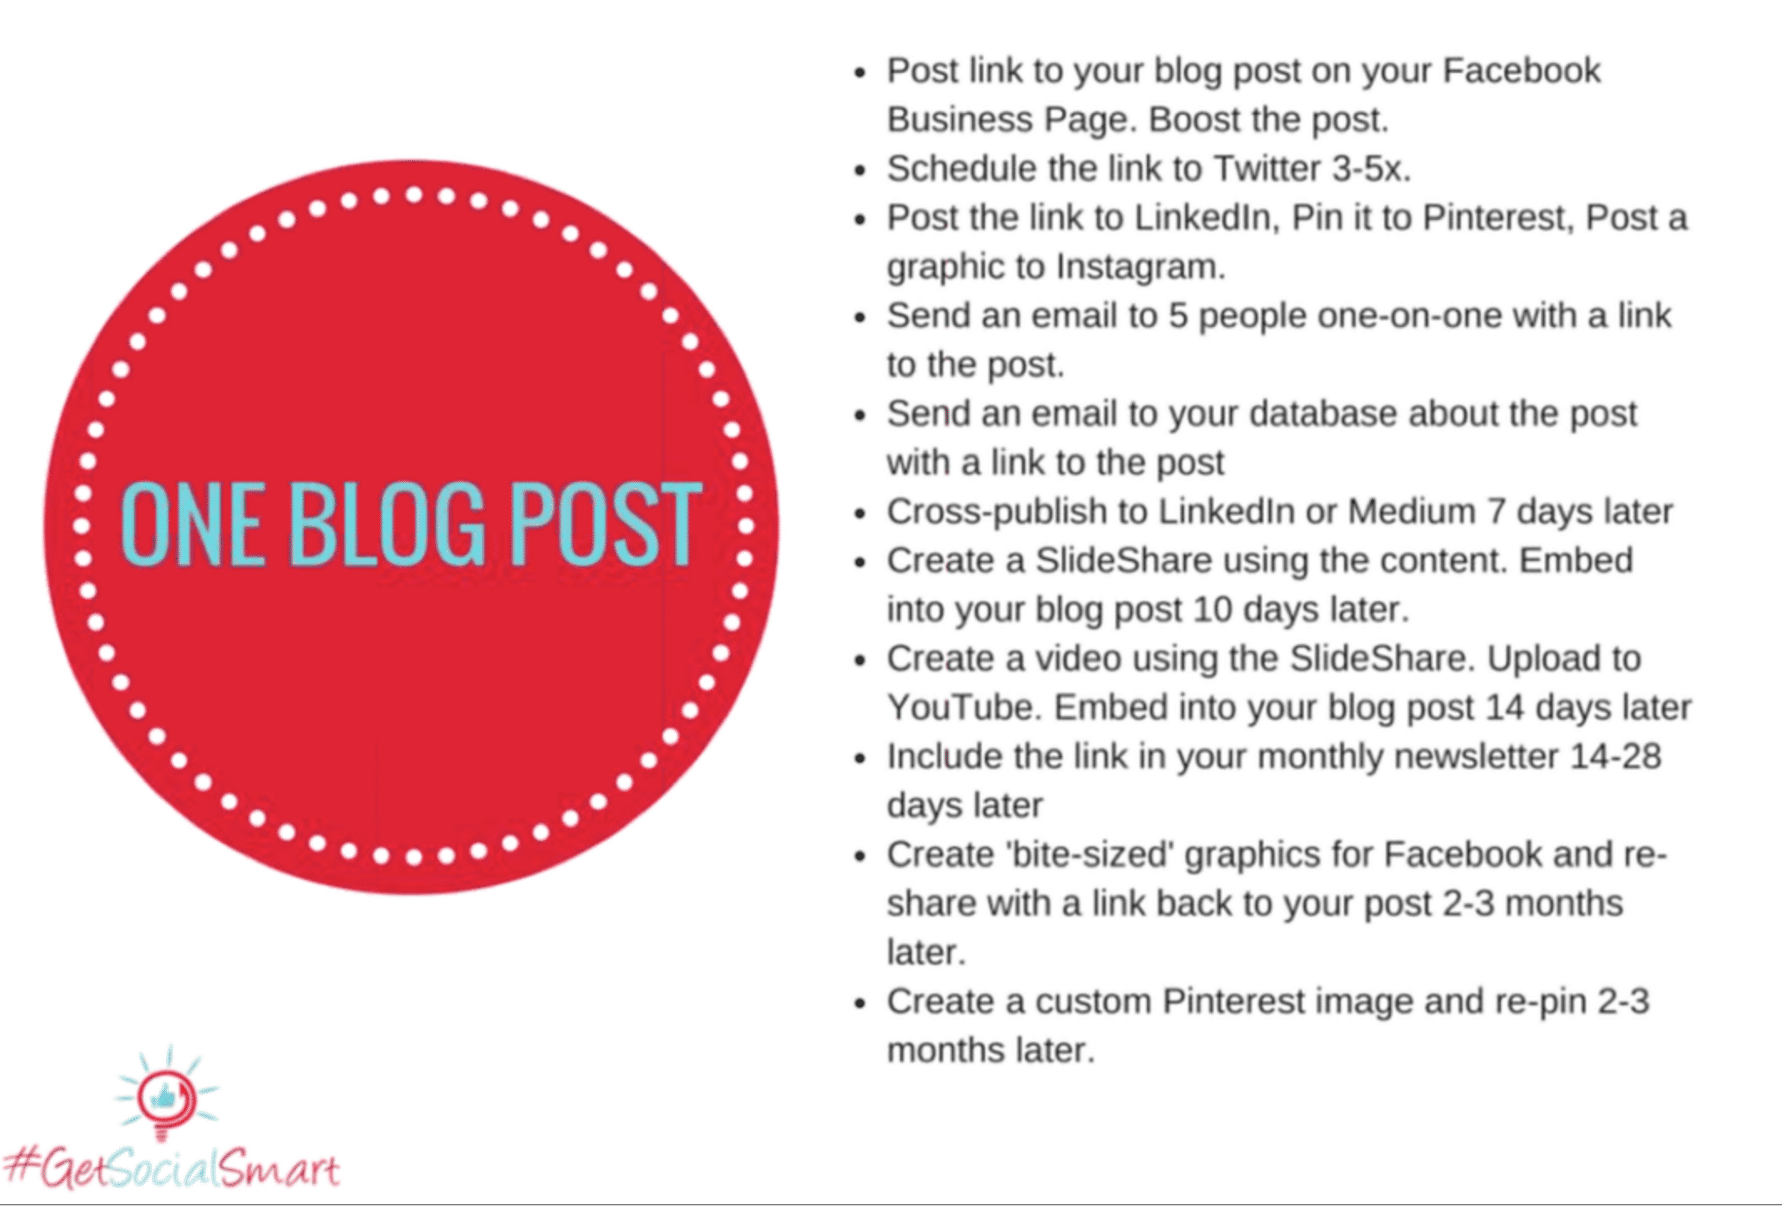 Here is a helpful checklist for promoting your blog posts.